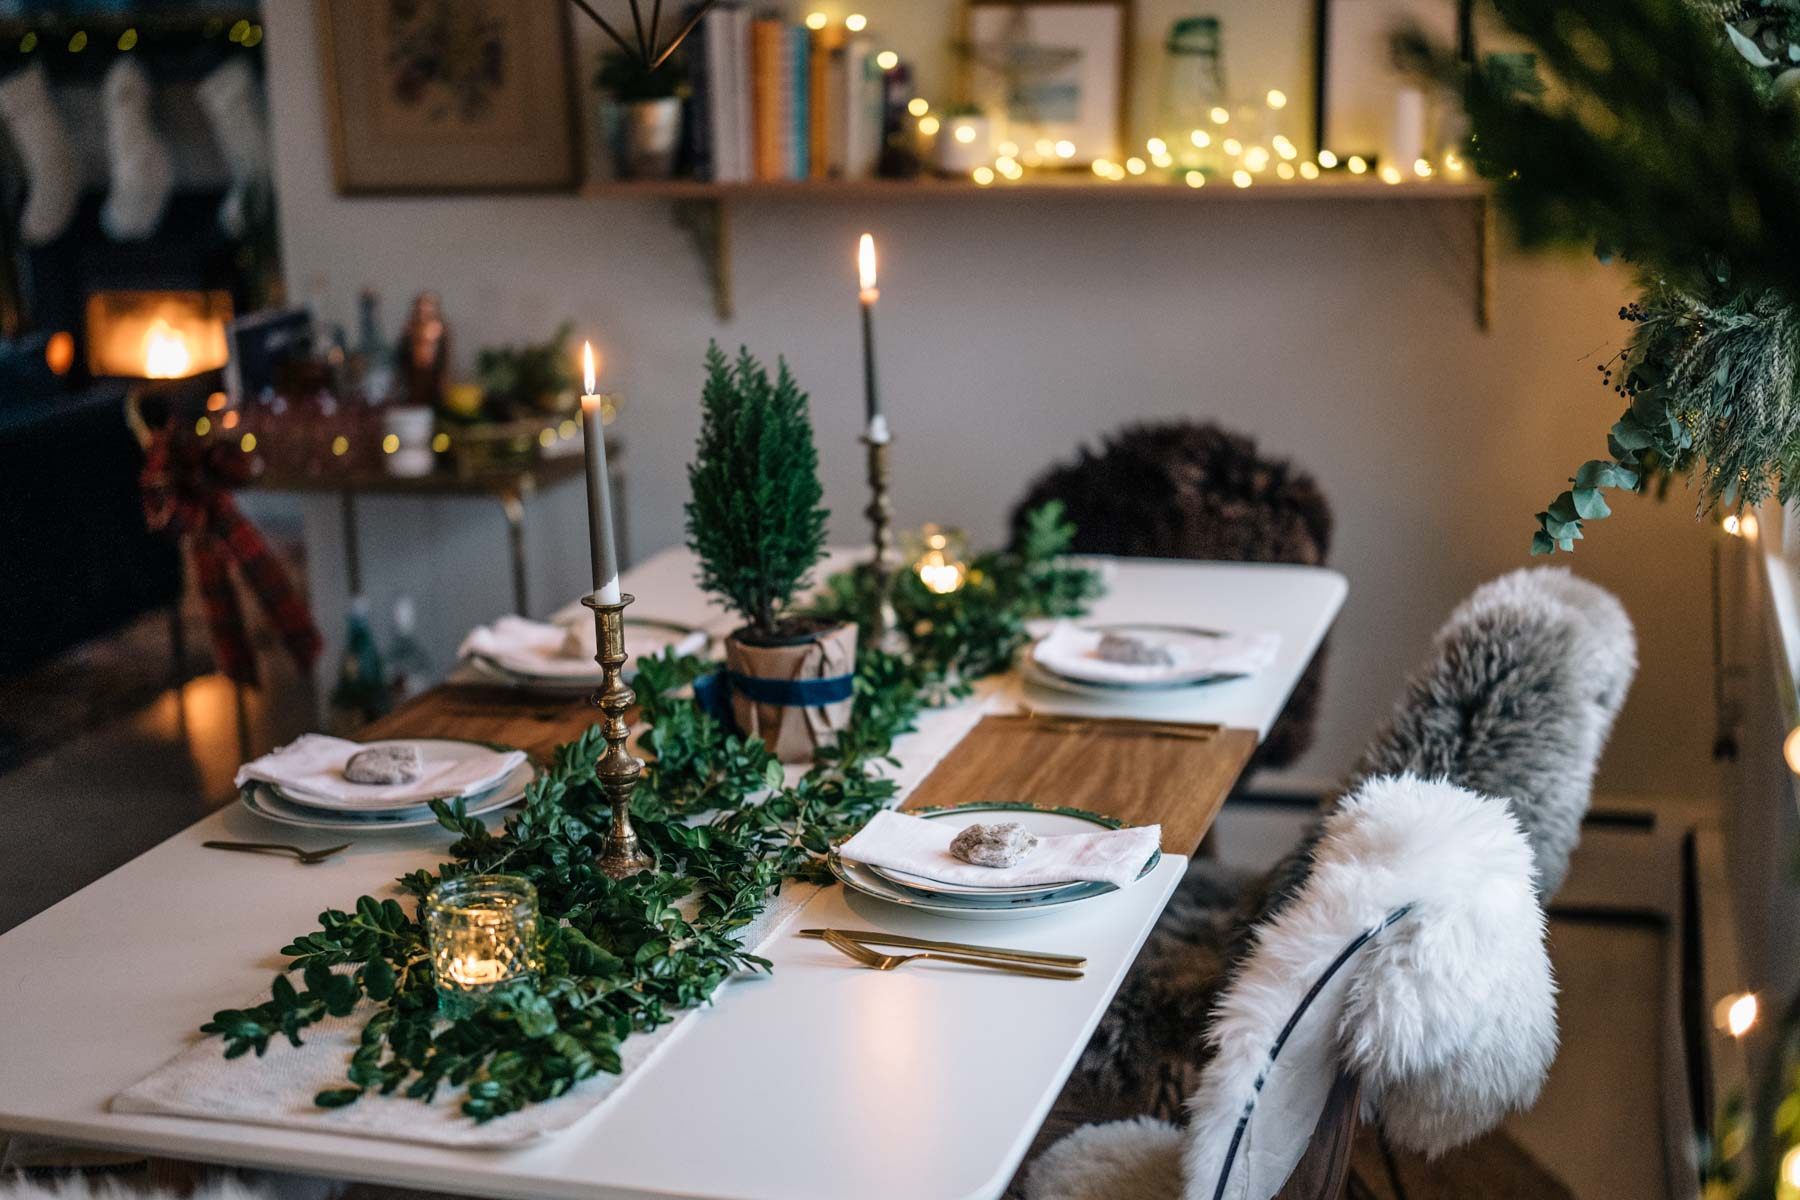 Jess Ann Kirby's holiday tablescape is rustic and chic with greenery and hints of gold